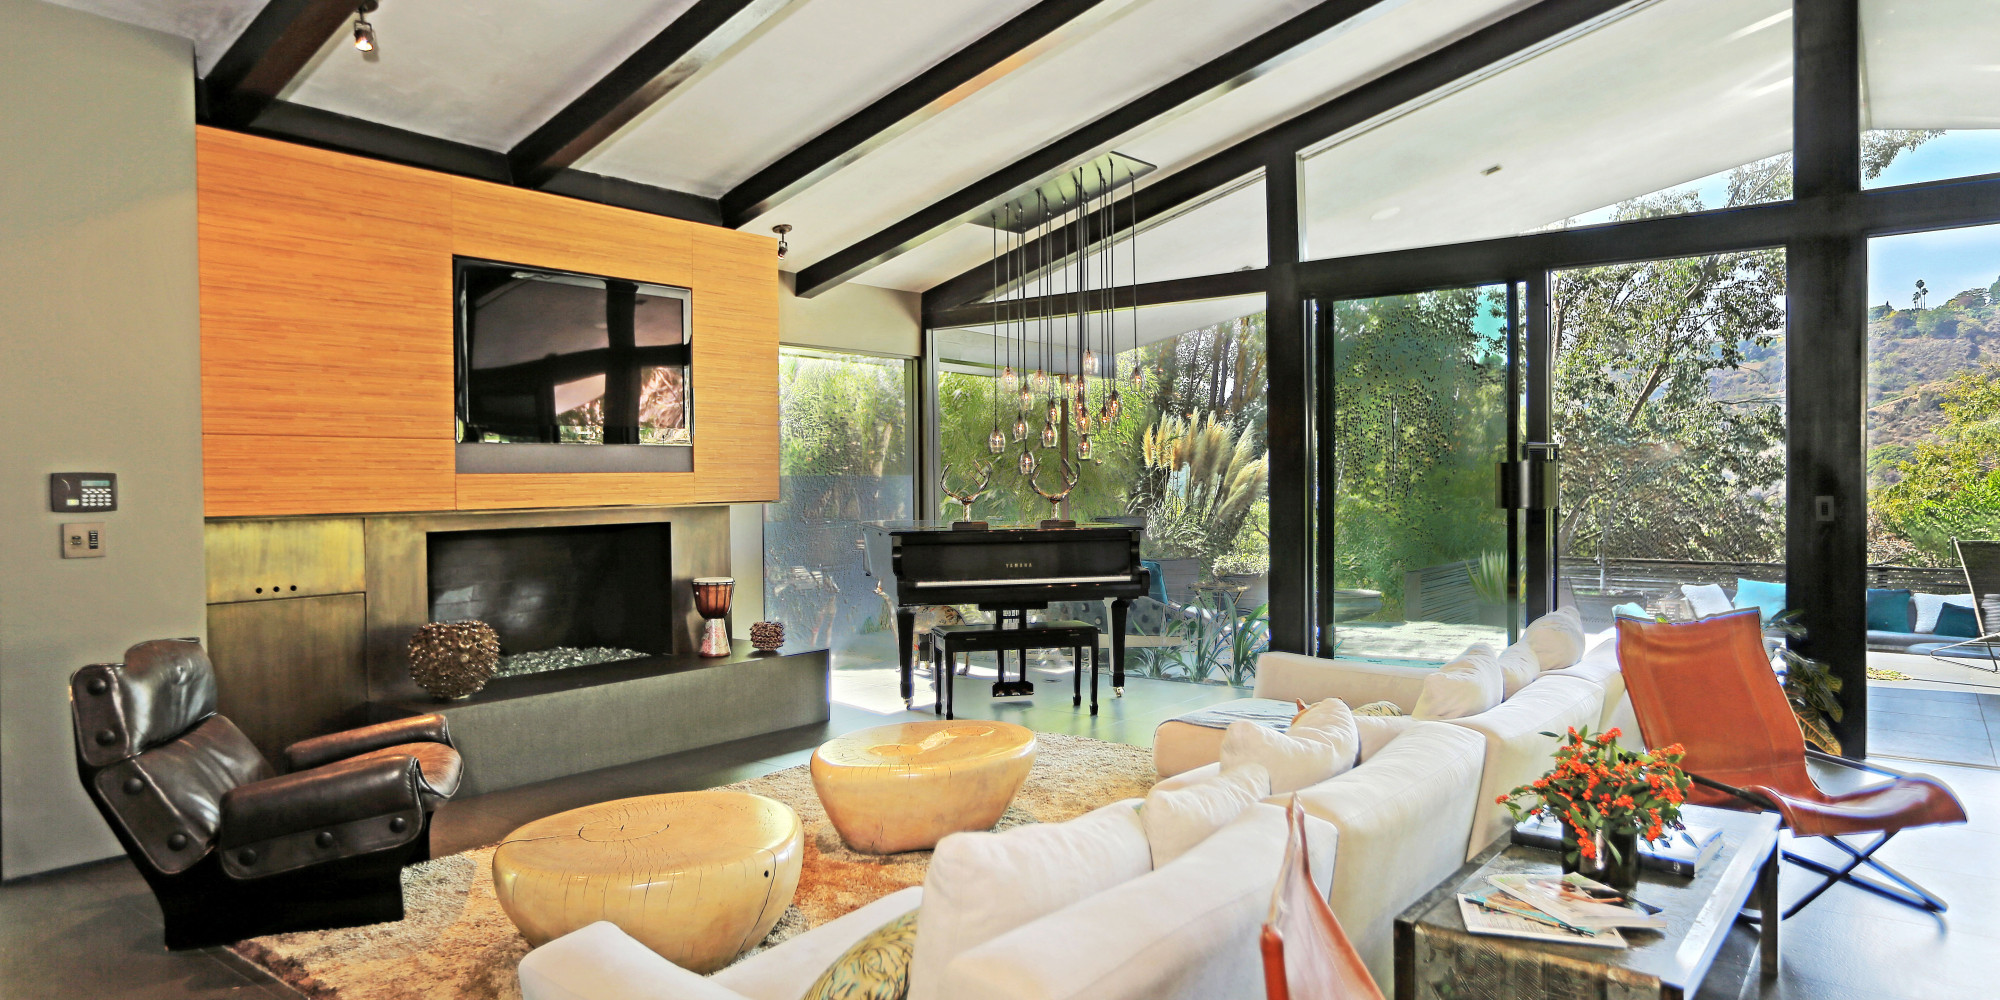 John Legend, Chrissy Teigen's Home Is For Sale, And There